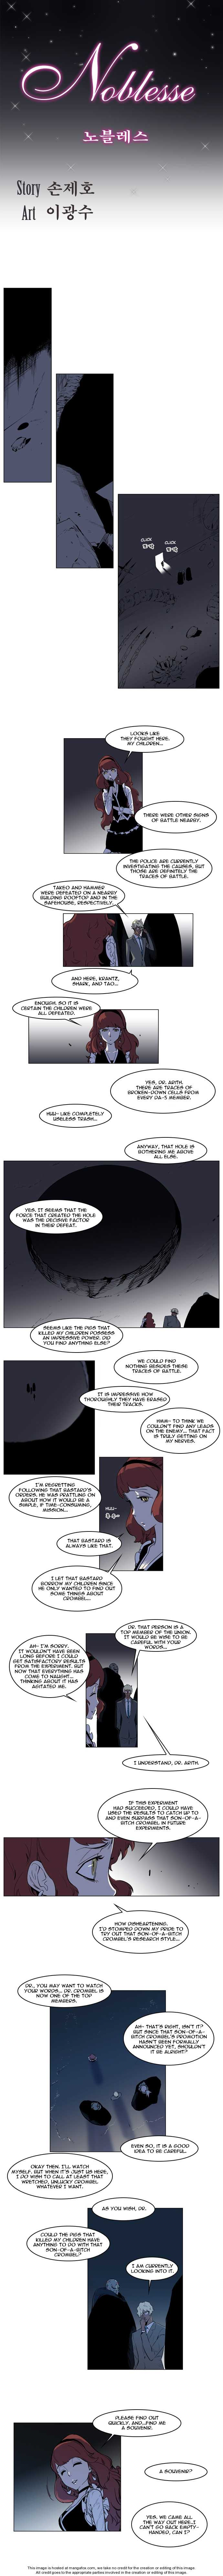 Noblesse 141 Page 1